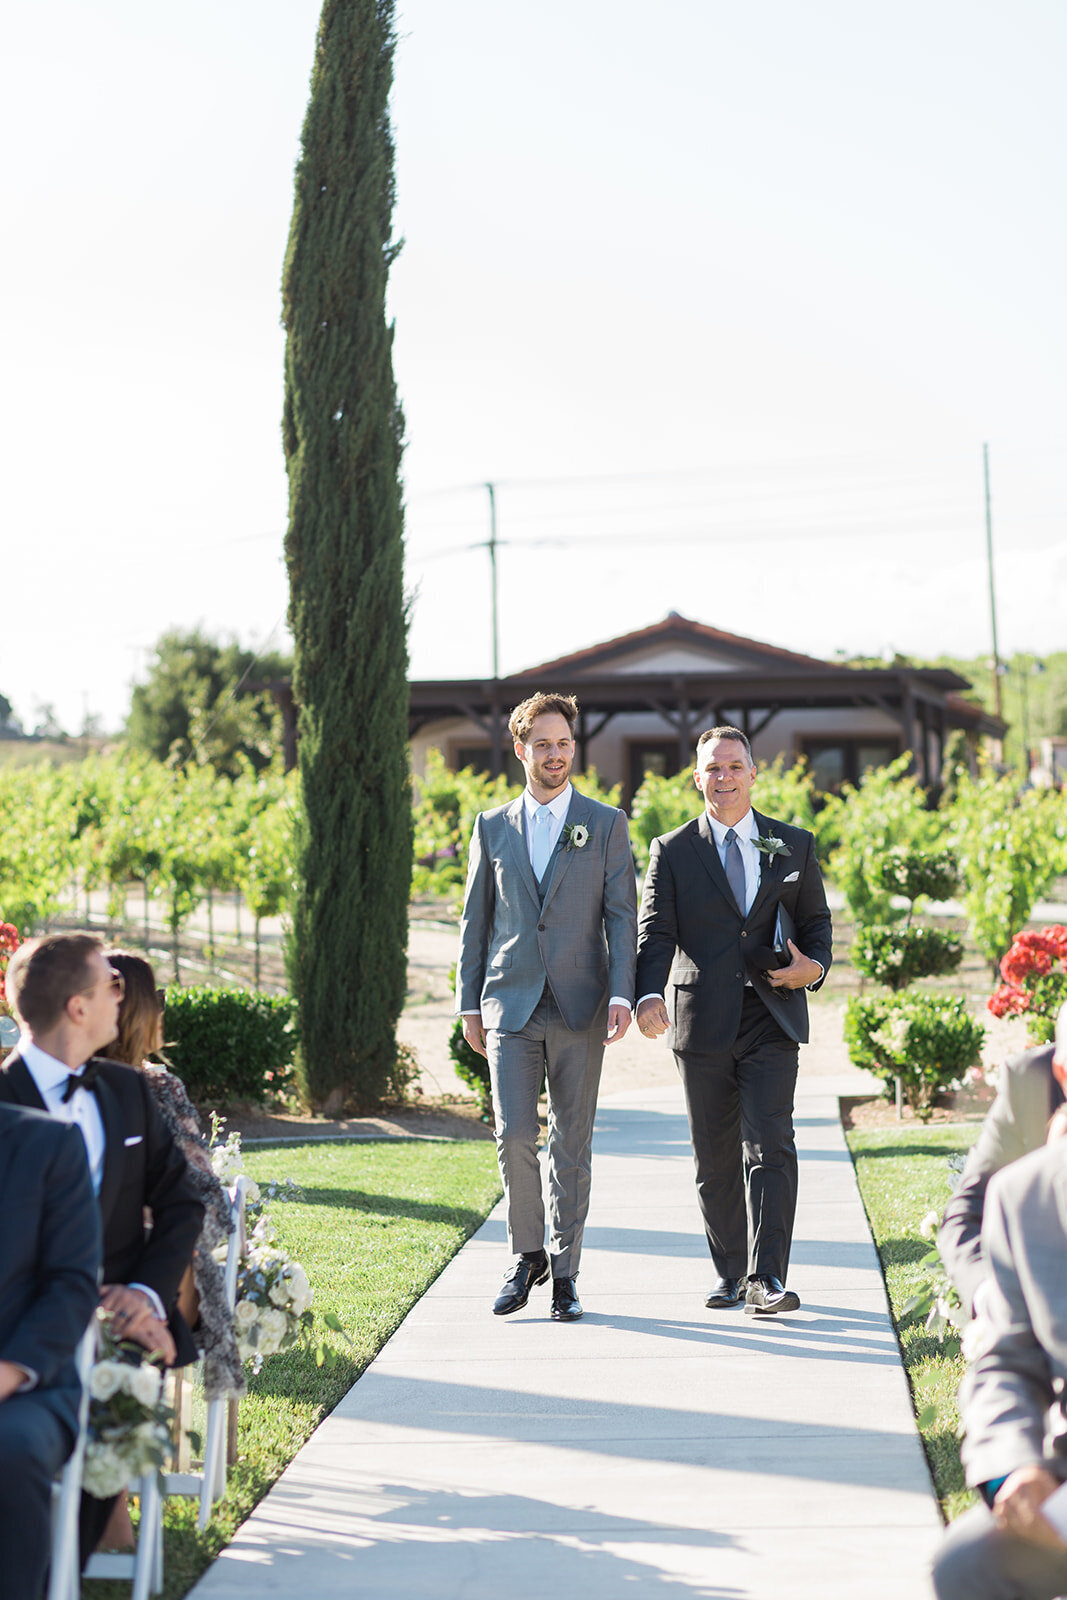 Avensole-Winery-Wedding-Photographer-30